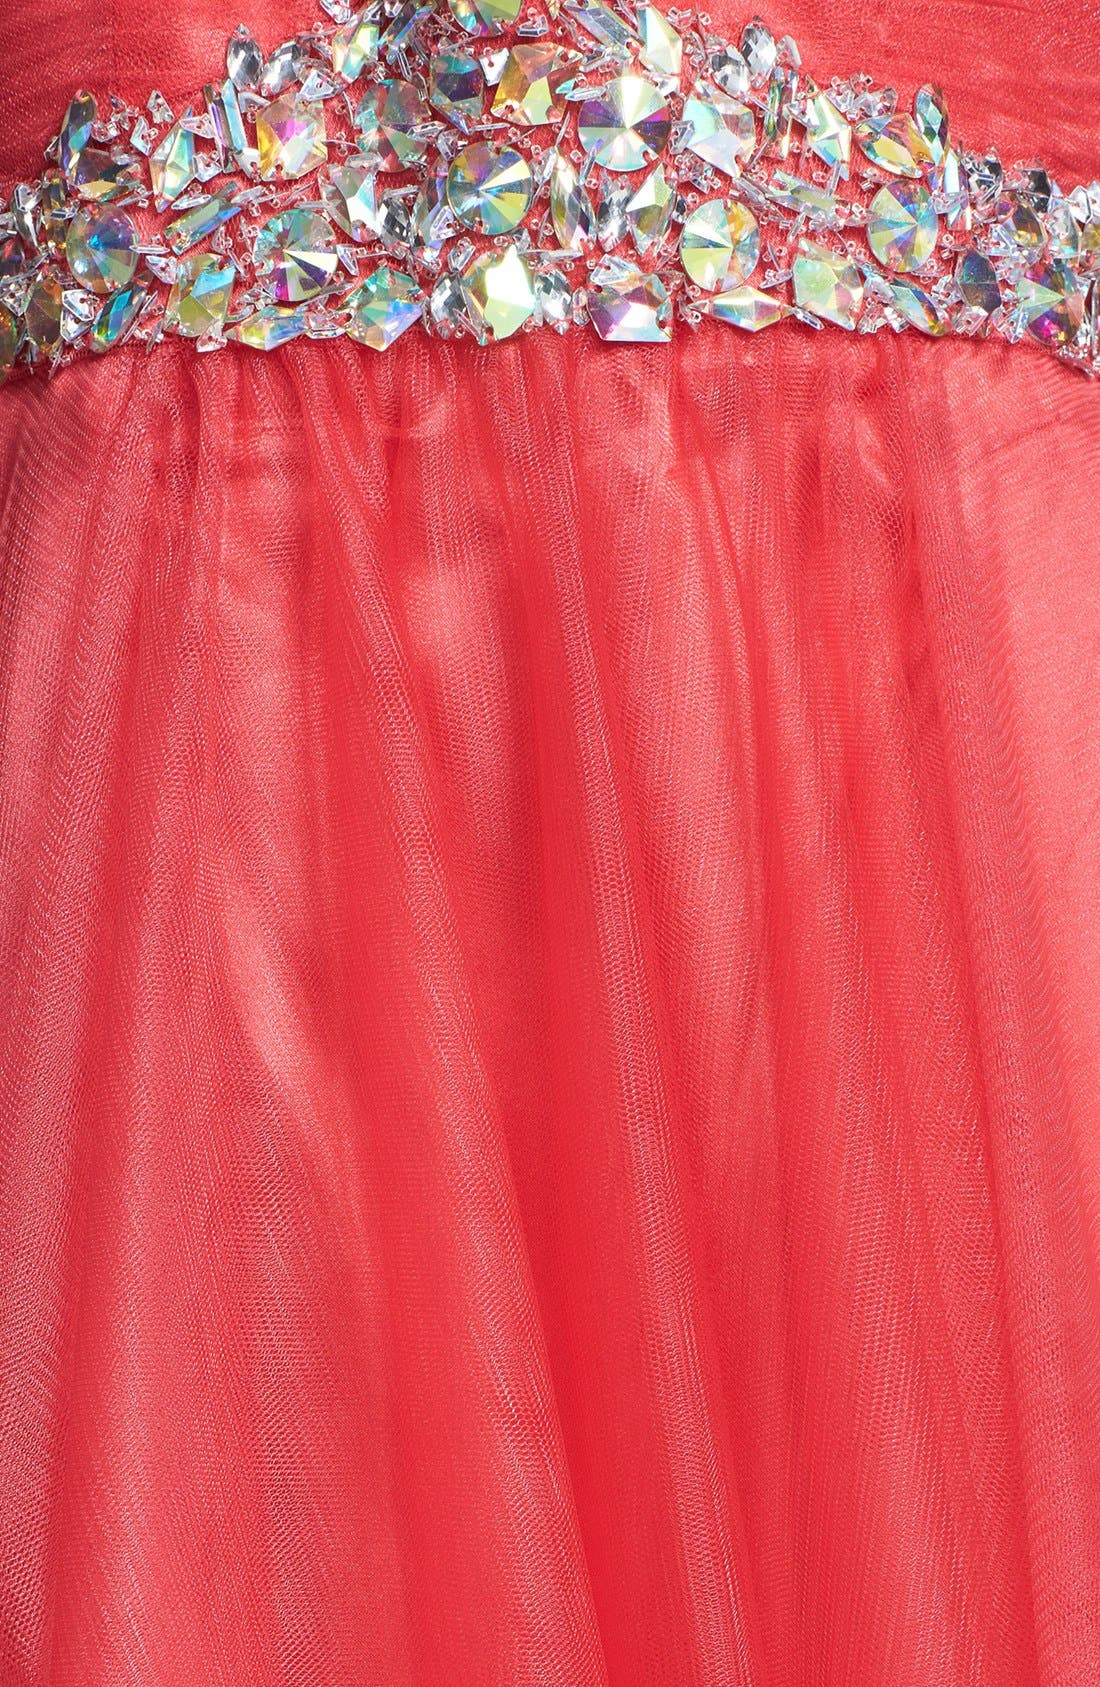 Alternate Image 3  - Sean Collection Embellished Strapless Tulle Ball Gown